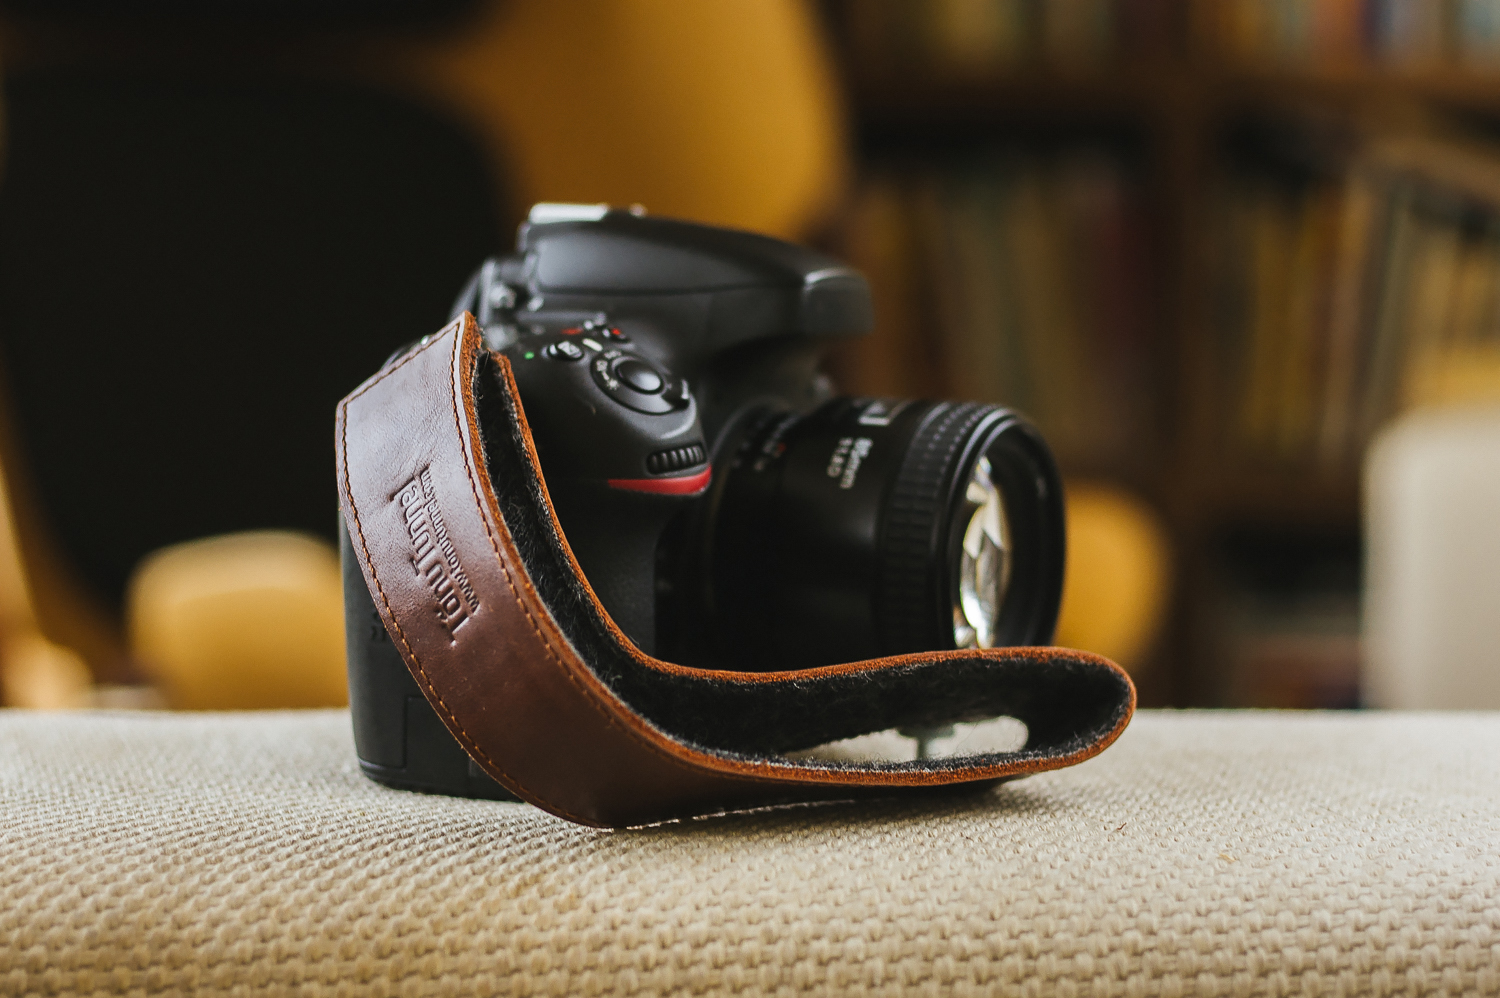 Tnu Tunnel camera with Stella Soomlais leather strap